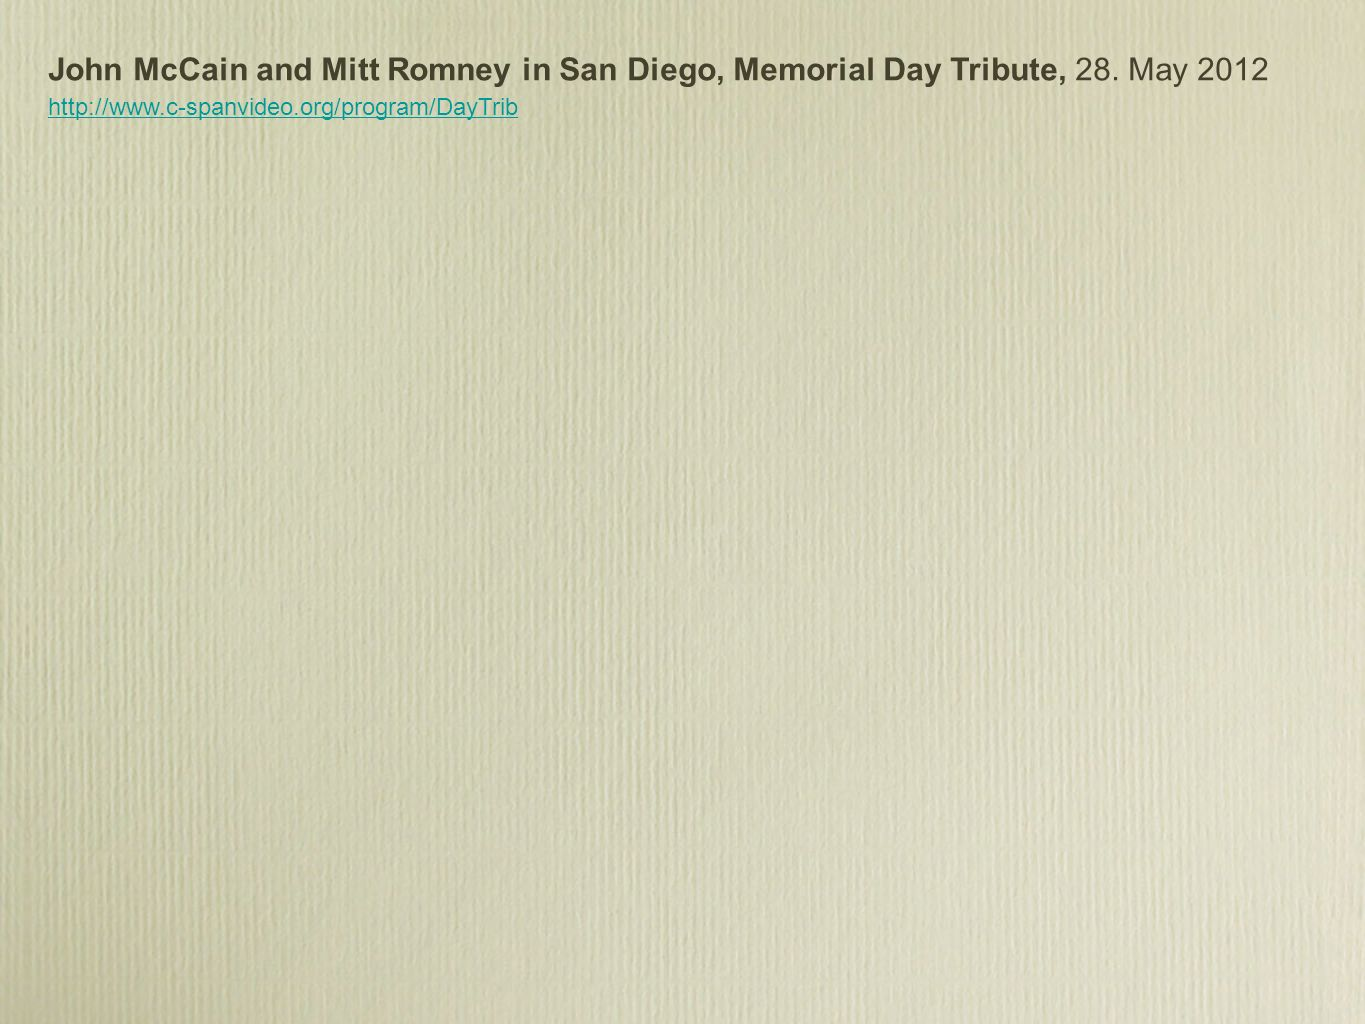 John McCain and Mitt Romney in San Diego, Memorial Day Tribute, 28